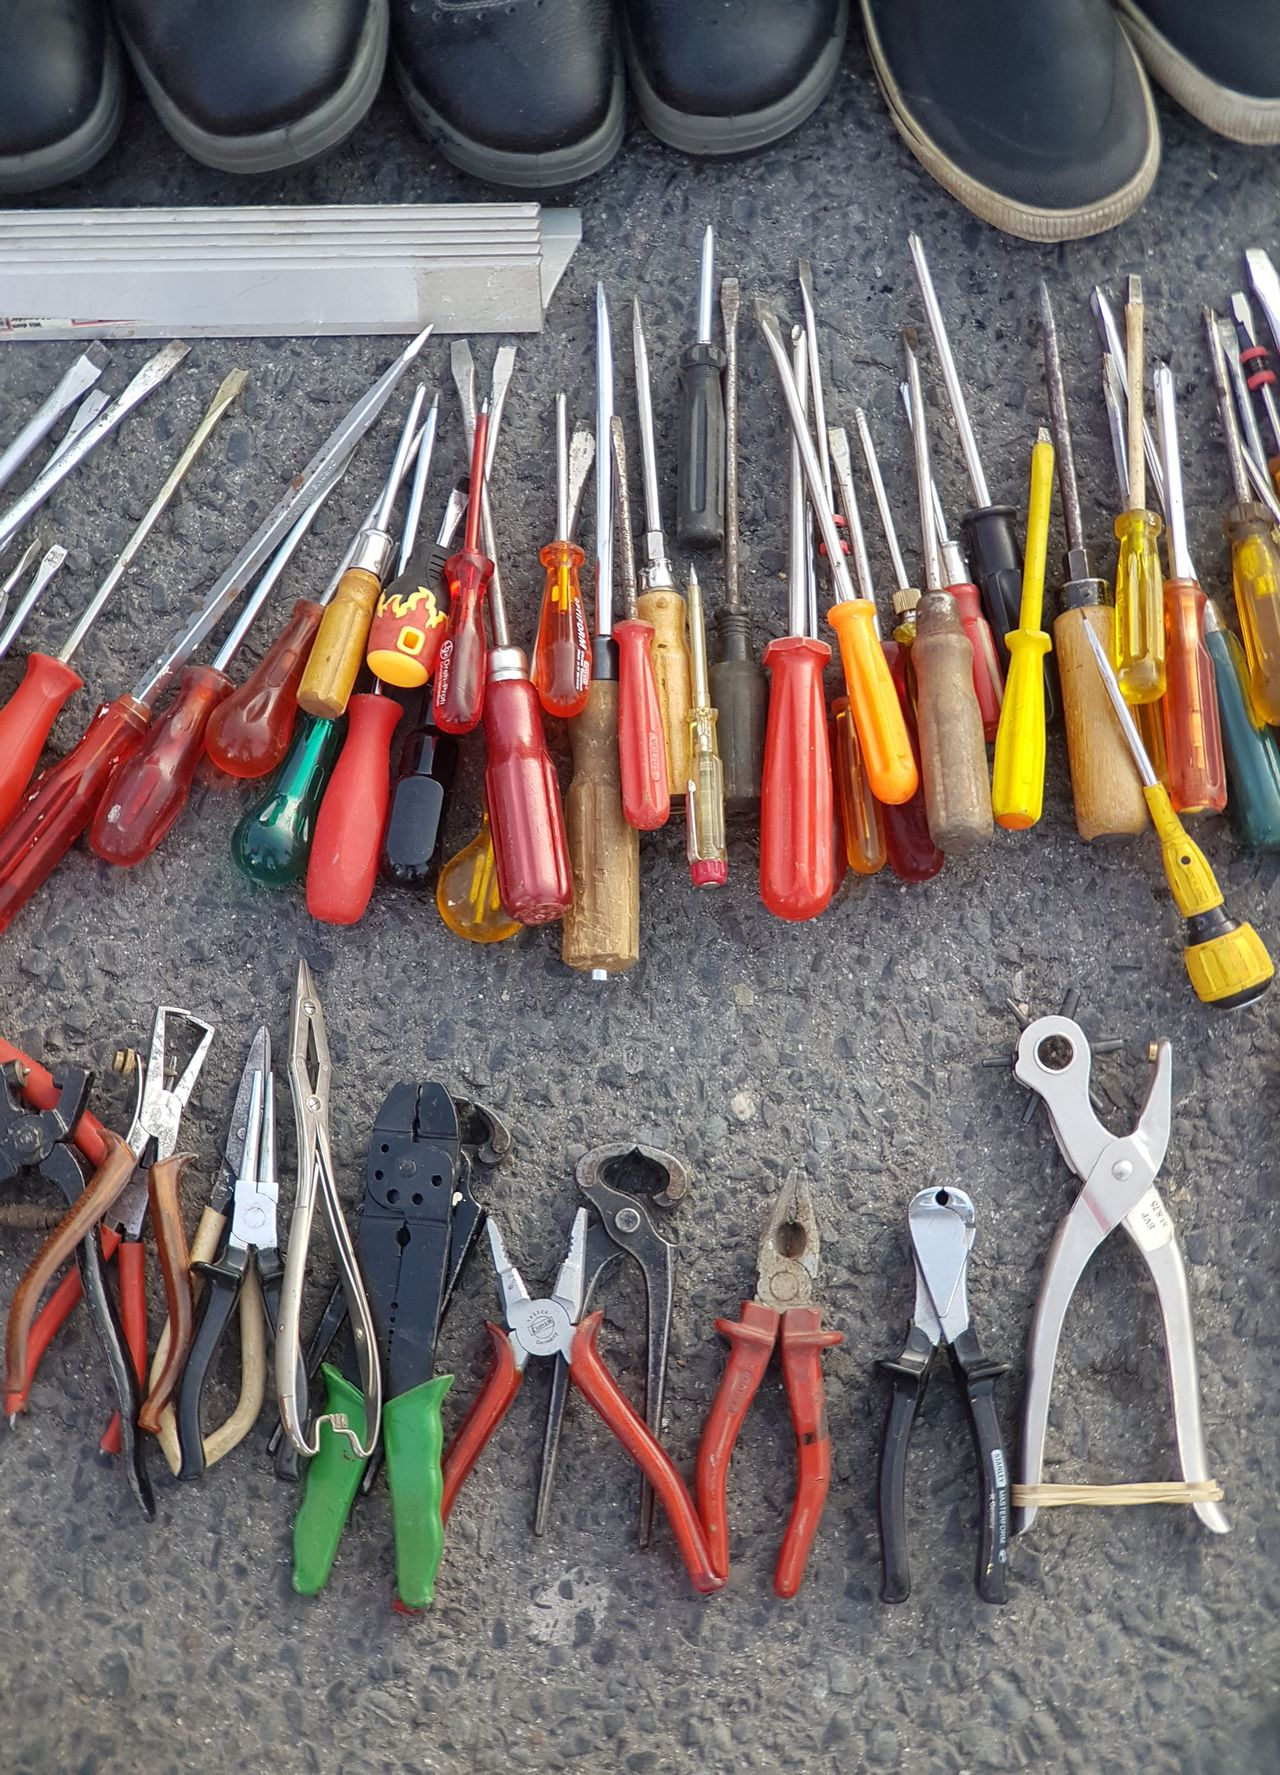 Large Group Of Objects Building Tools Tool Working Tools Working Working Time Backgrounds Background Handmade Selfmade Fleamarket Flea Market Handwork Working Hard Screwdriver Screwdrivers Forcep